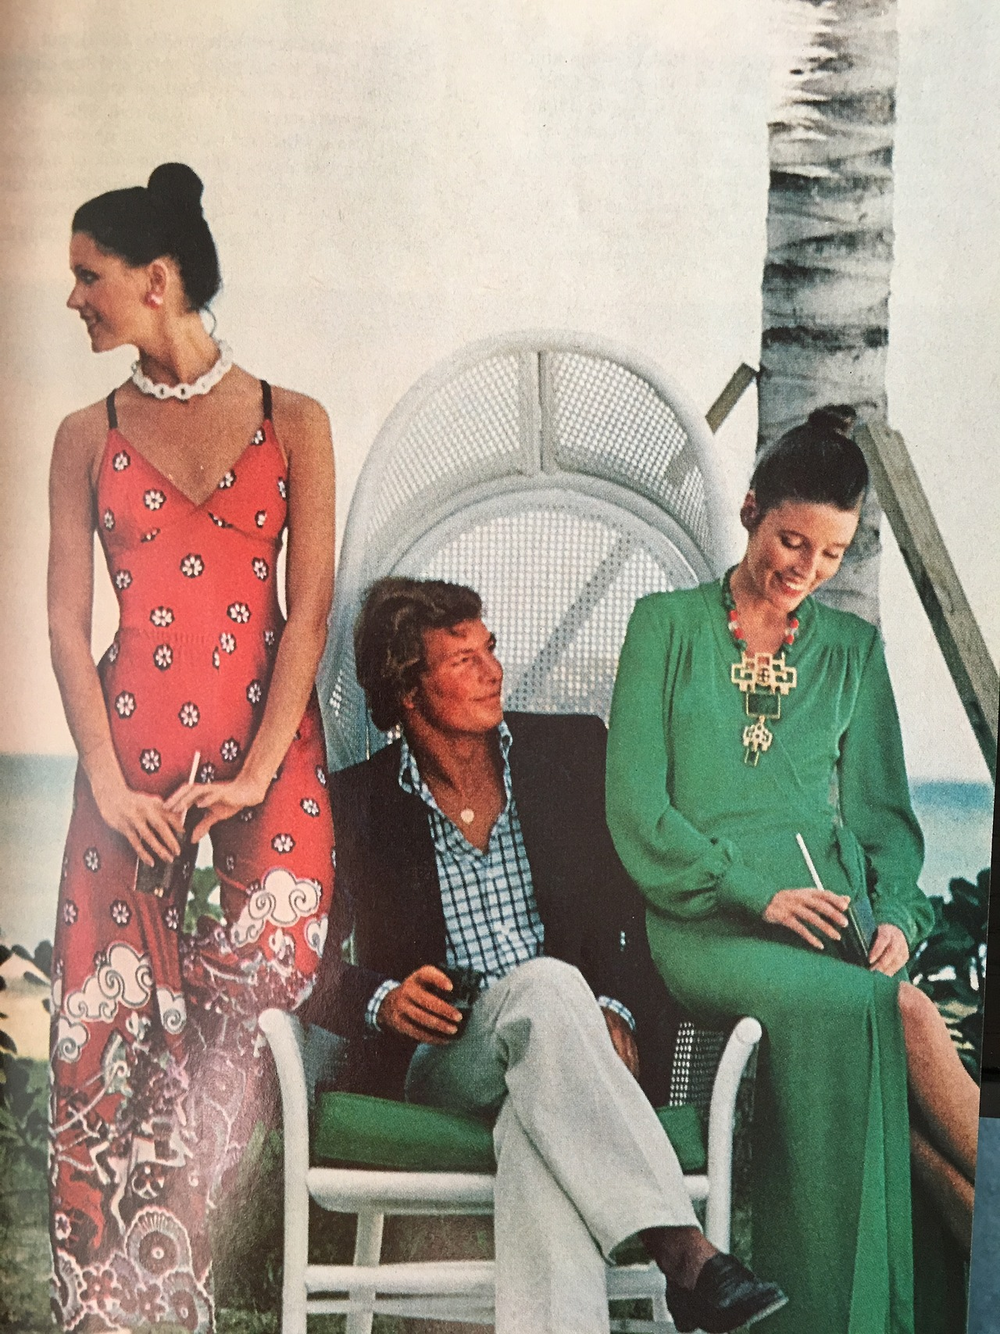 Fashion feature from Good Housekeeping. May 1973.